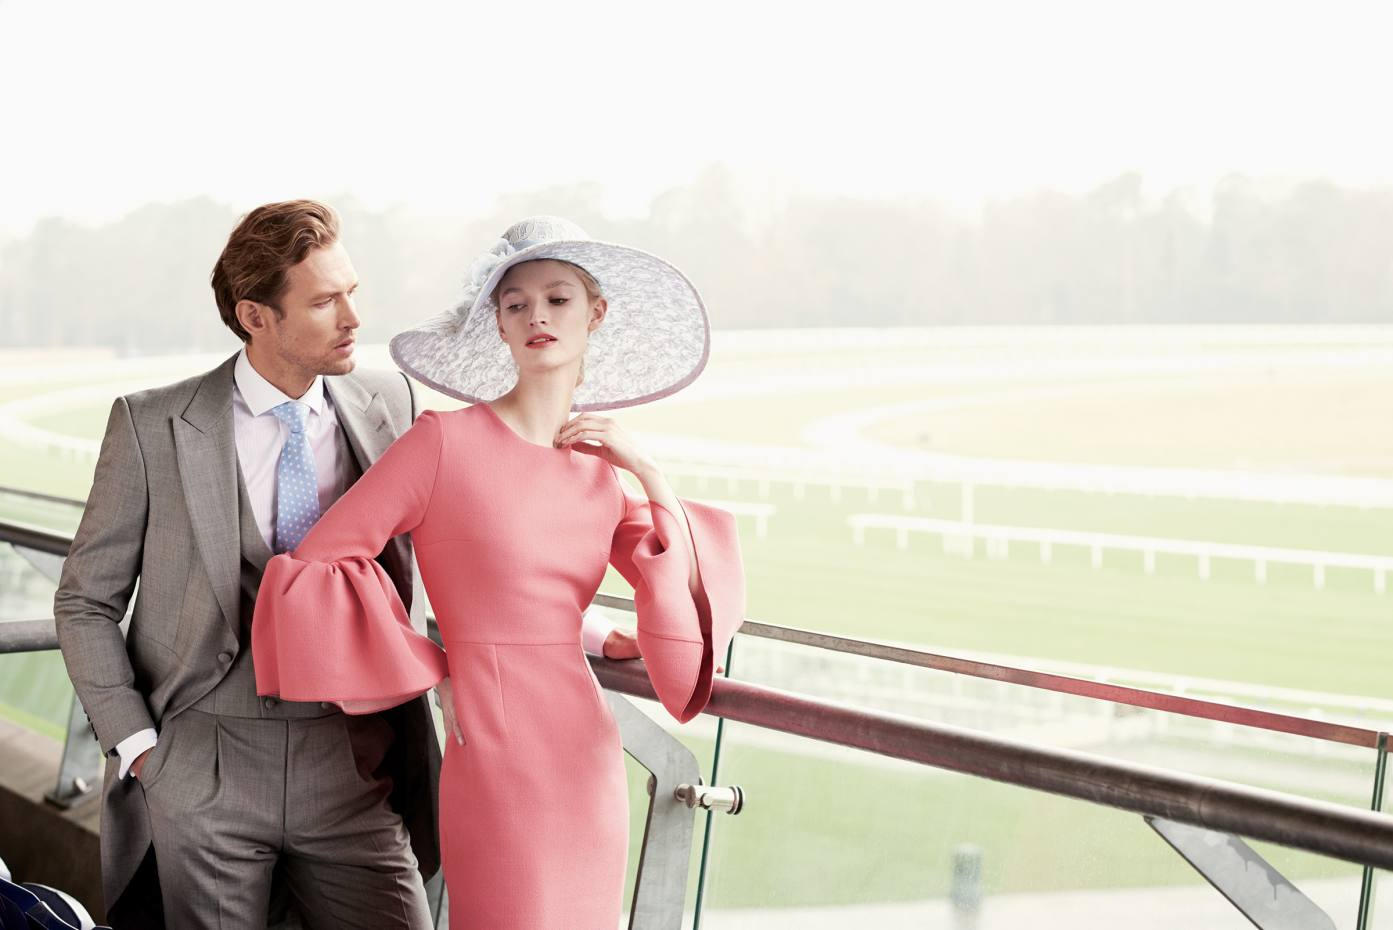 He wears Gieves & Hawkes wool morning suit, £1,100, and cotton shirt, £125. Oliver Brown silk twill tie, £35. She wears Roksanda polyester-mix Margot dress, £995. Edwina Ibbotson Millinery sinamay straw and lace Lace & Flowers hat, £1,460